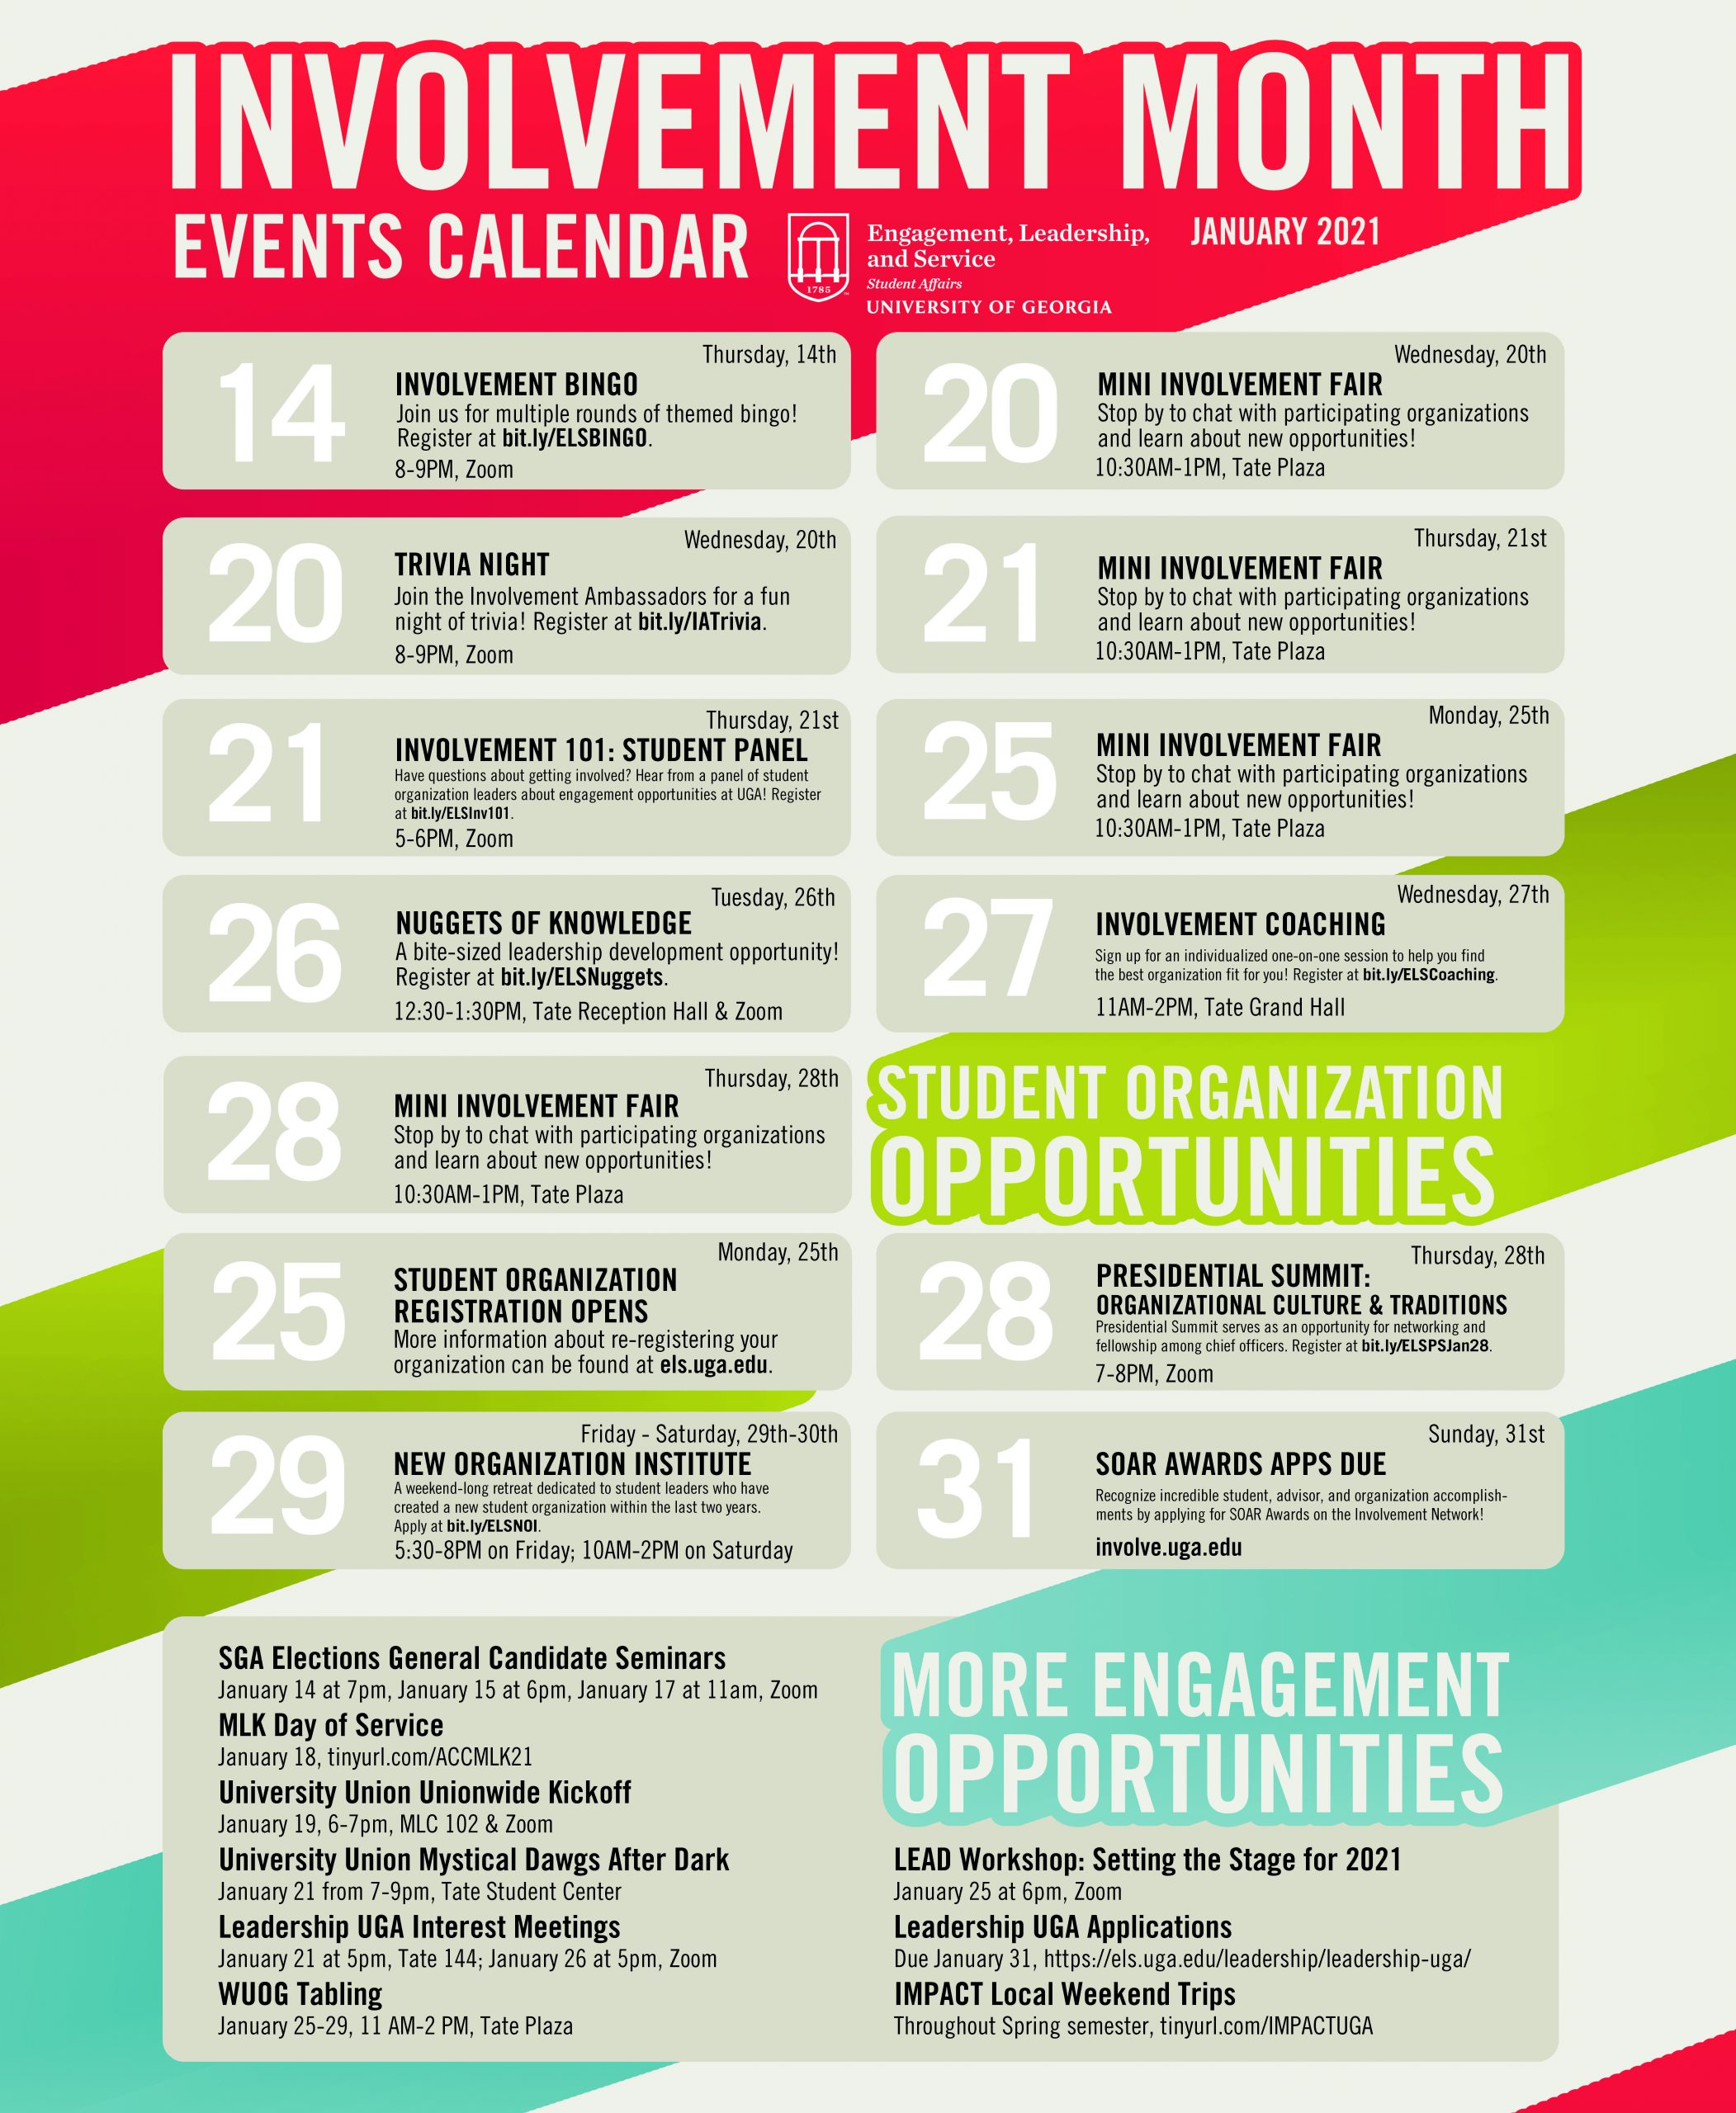 Flyer with the event details for Involvement Month